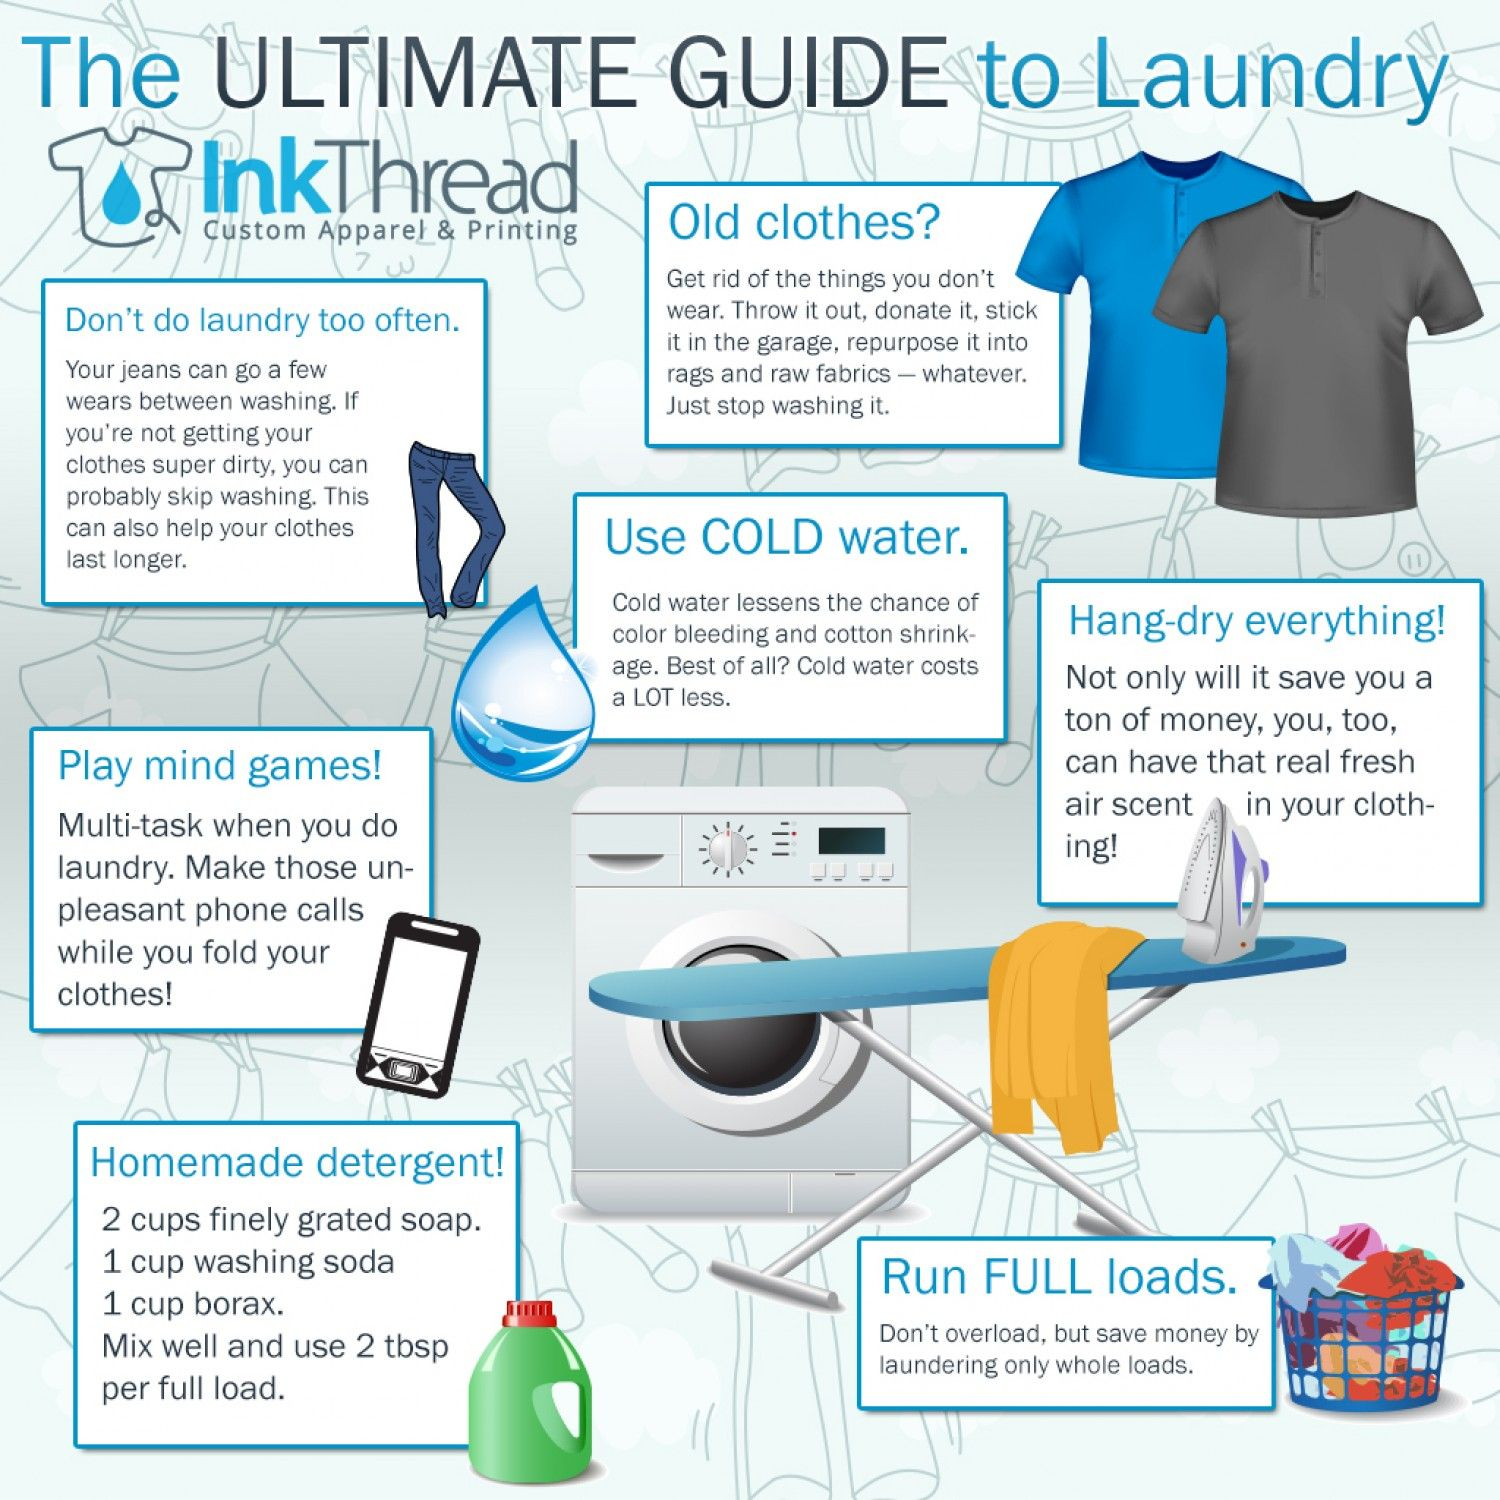 Dubai laundry tips guids dry cleaners laundry service in dubai dubai laundry tips guids solutioingenieria Choice Image